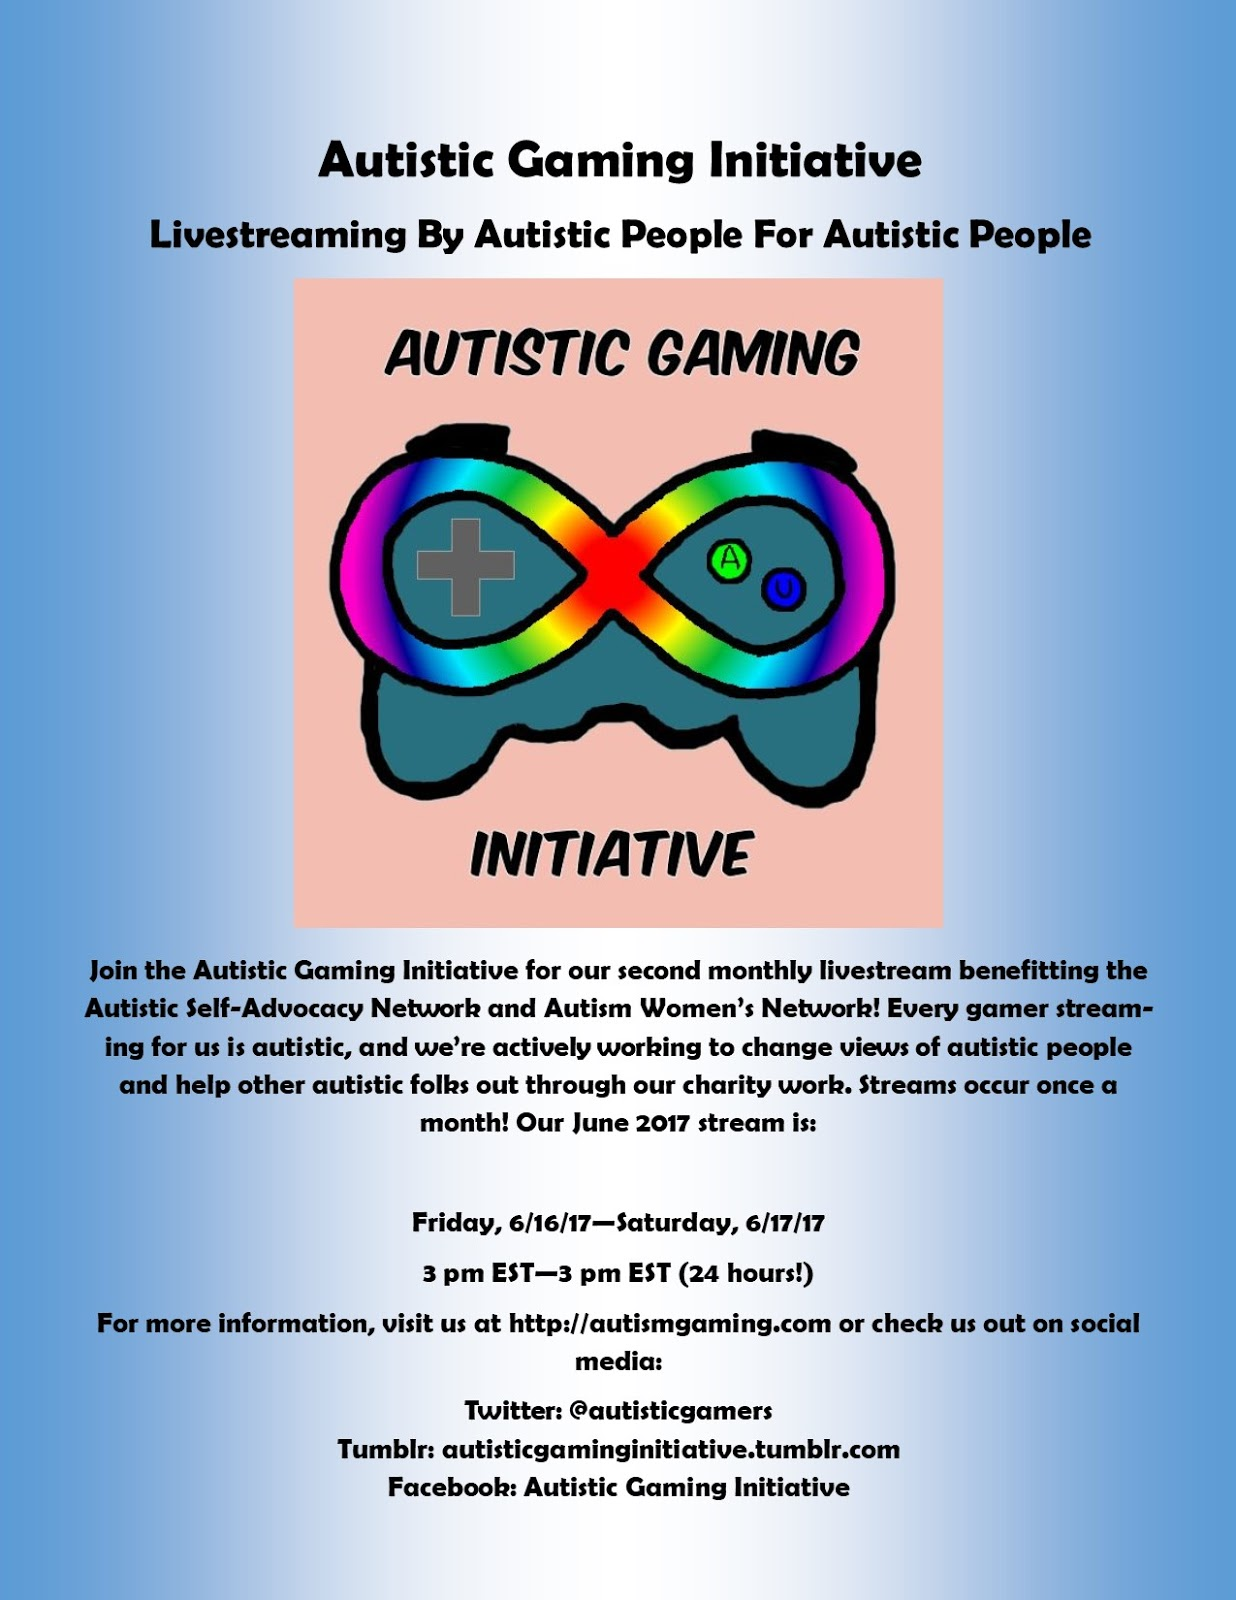 the life of an aspie the autistic gaming initiative